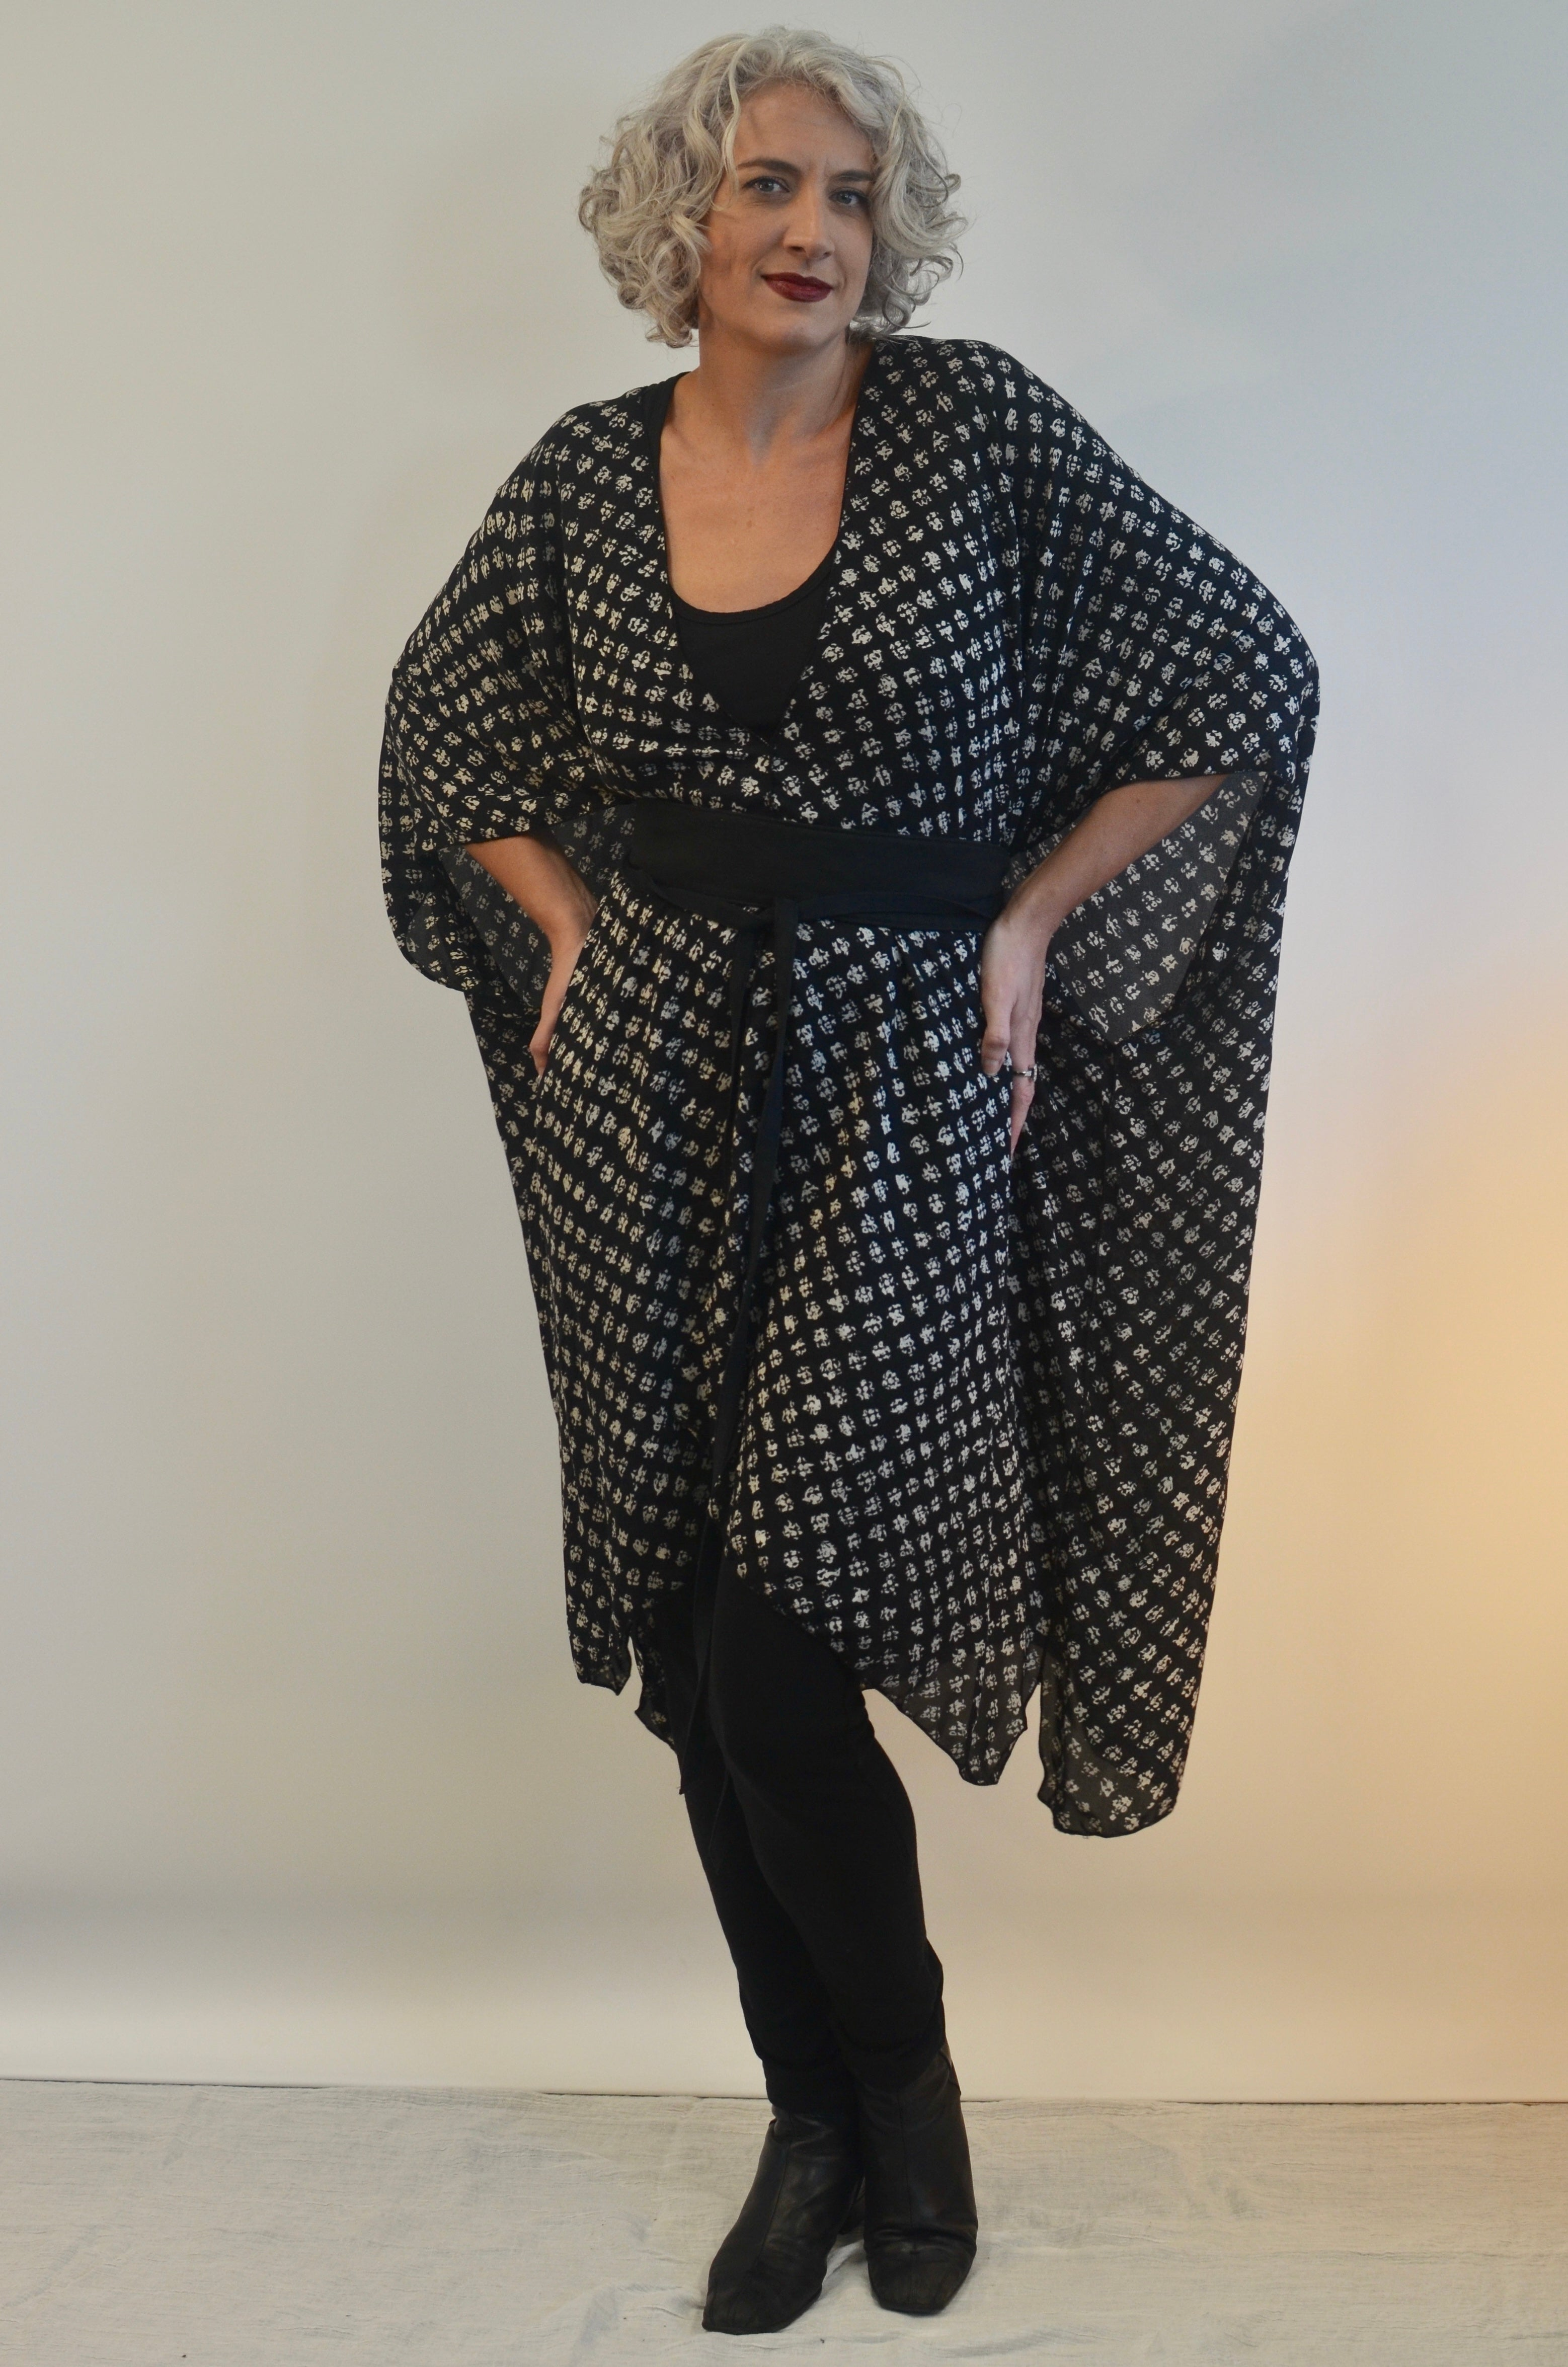 Long Top in Black and White Rayon